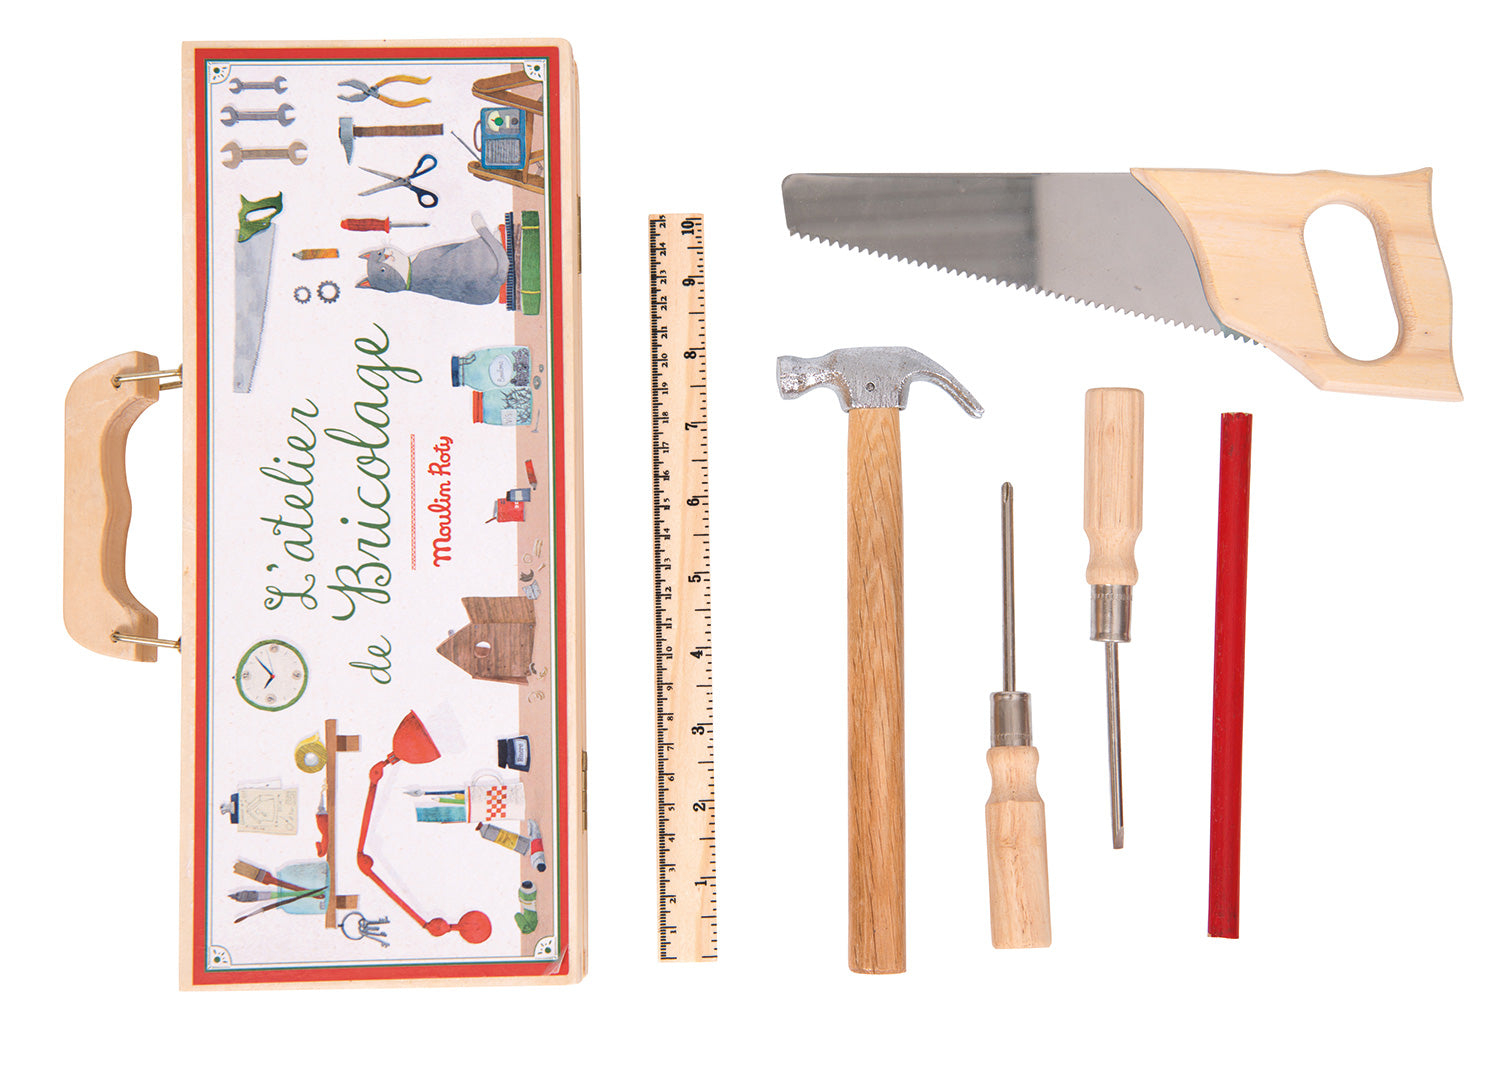 Moulin Roty | Small Tool Box Set in Wooden Case | 6 Wood and Steel Tools